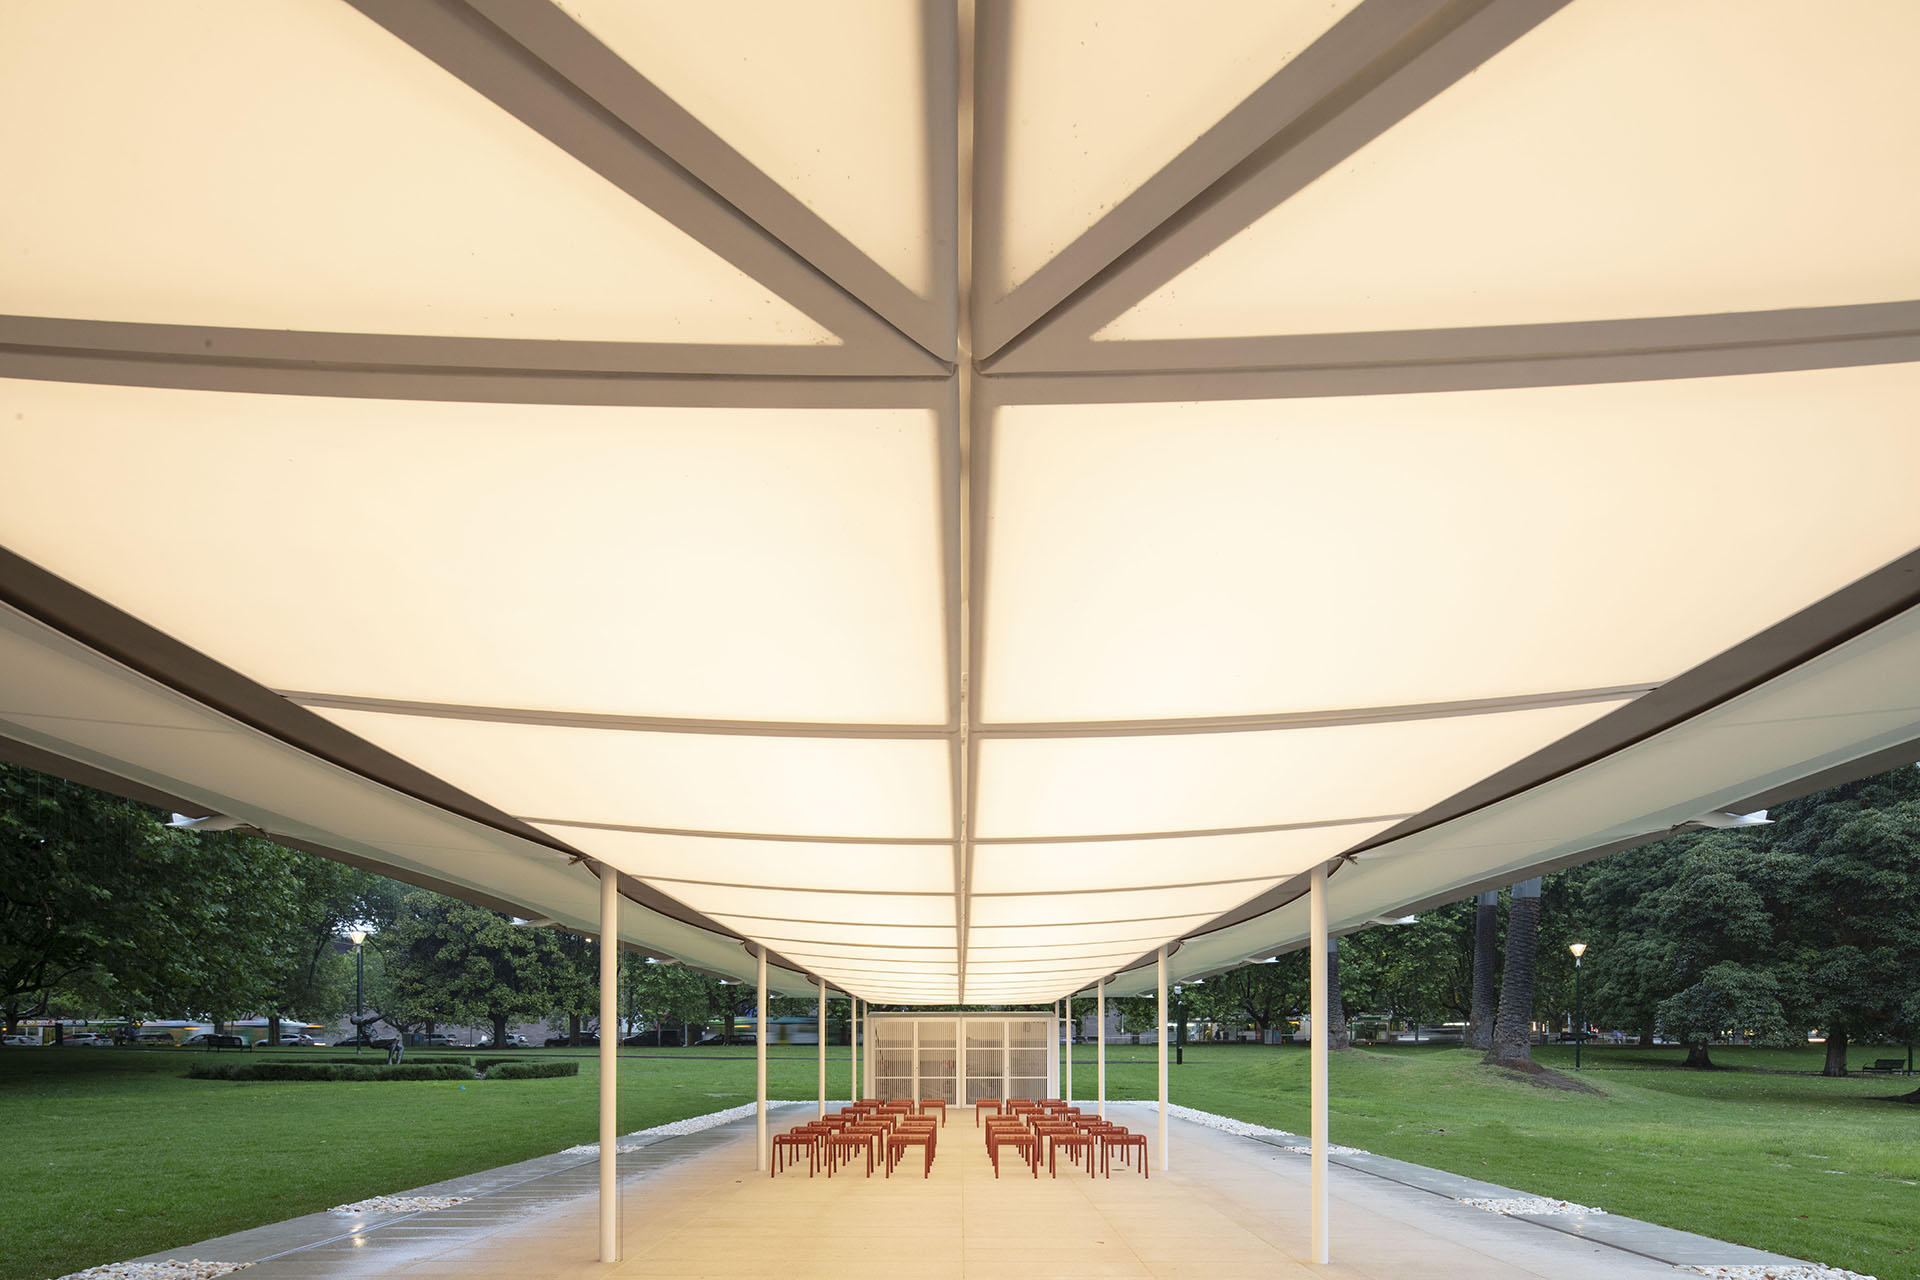 The pavilion has a flap along the edge of the roof, like the aileron on an aircraft wing | MPavilion 2019| Australia | Glenn Murcutt| STIRworld